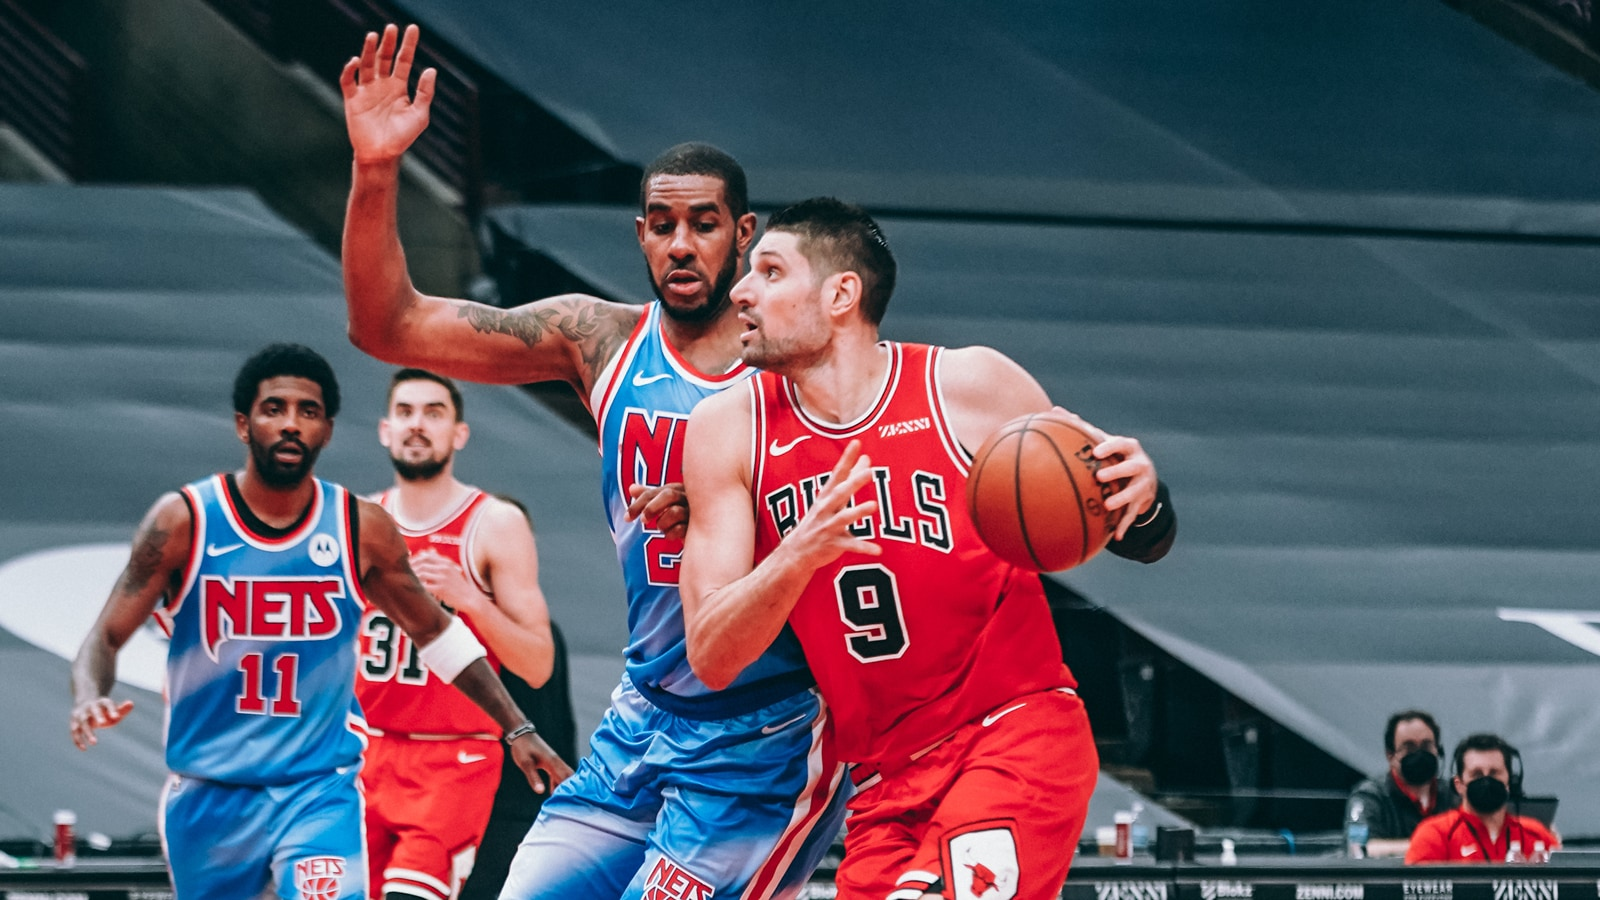 Vucevic, LaVine lead Bulls past Nets to end losing skid | Chicago Bulls